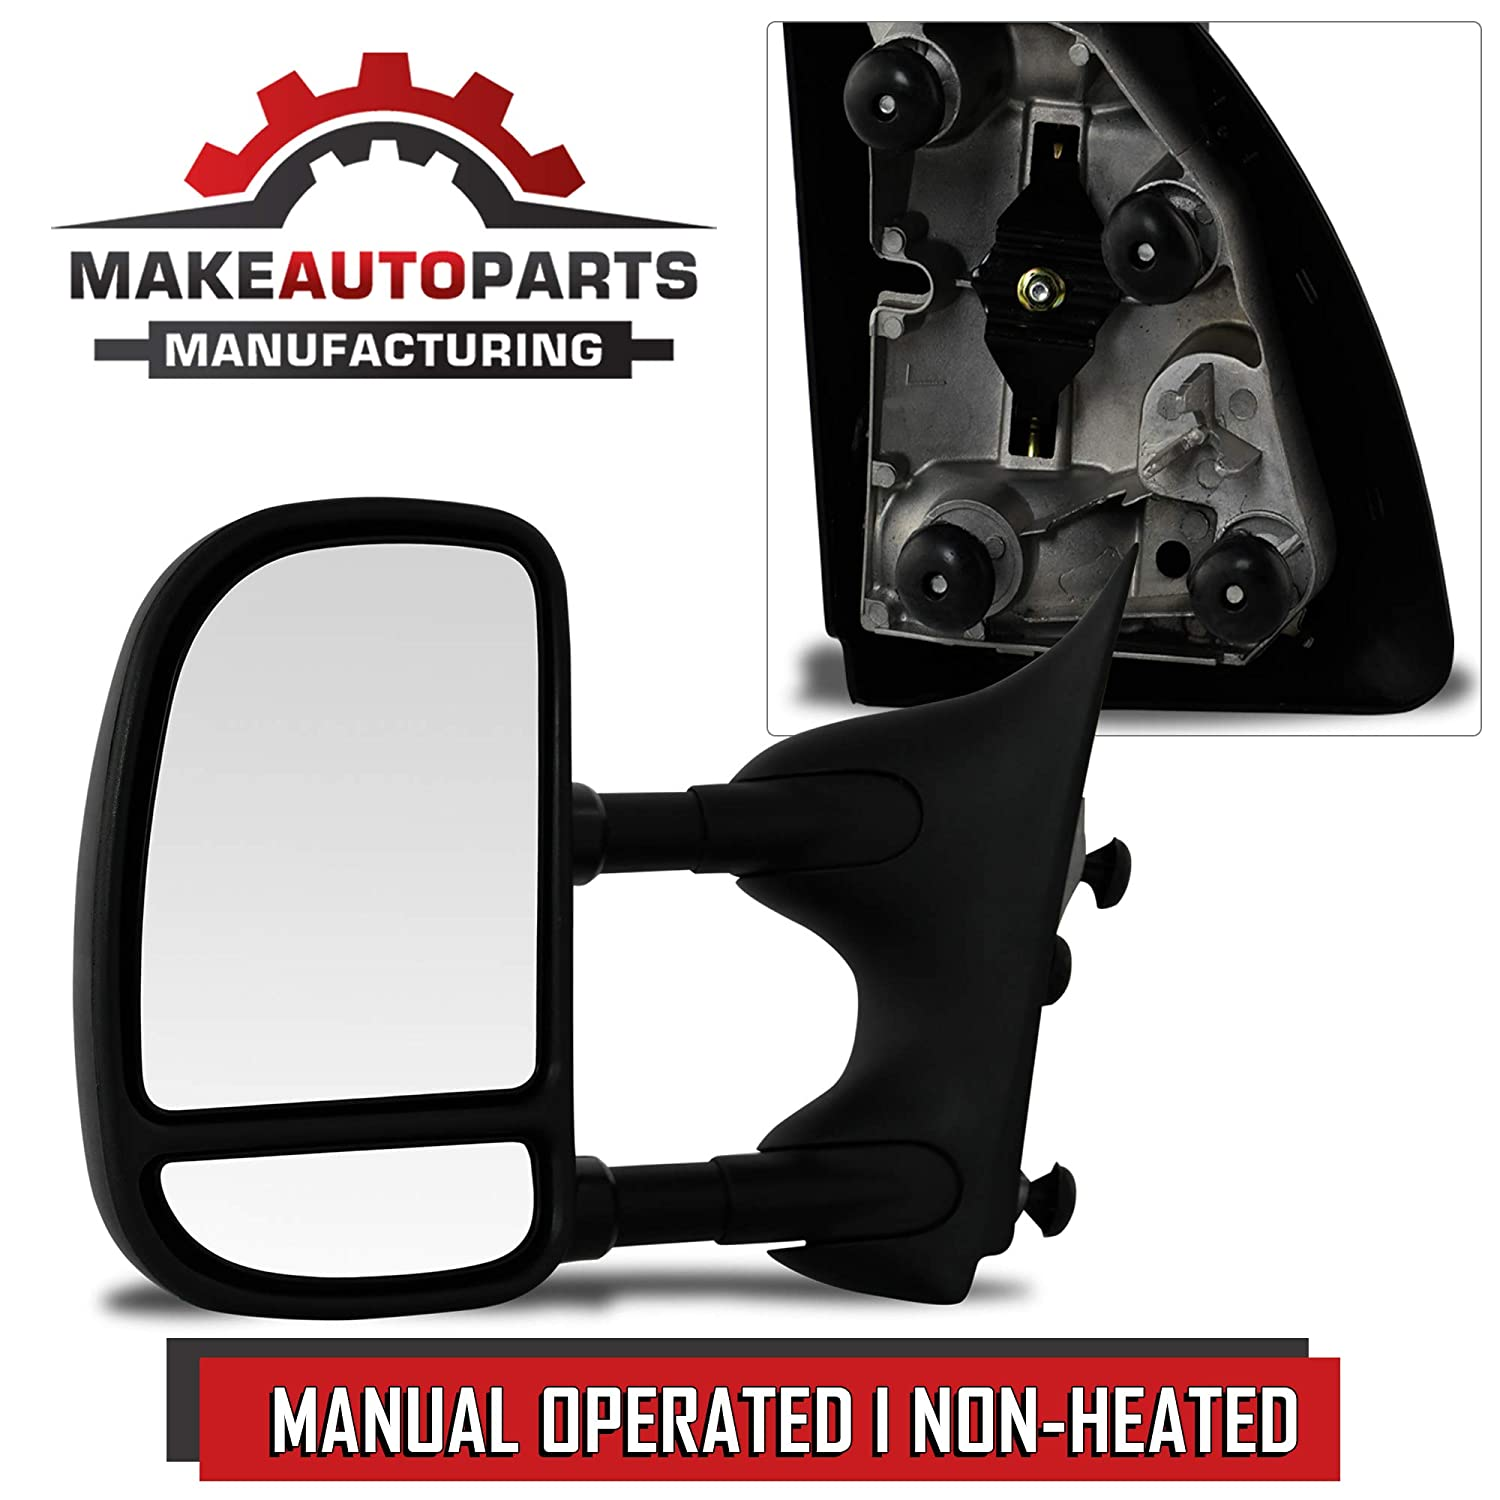 F550 1999-2007 F350 F450 FO1320226 Make Auto Parts Manufacturing Premium Left//Driver Side Manual Operated /& Folding Telescopic Type Non-Heated Towing Mirror For Ford Super Duty F250